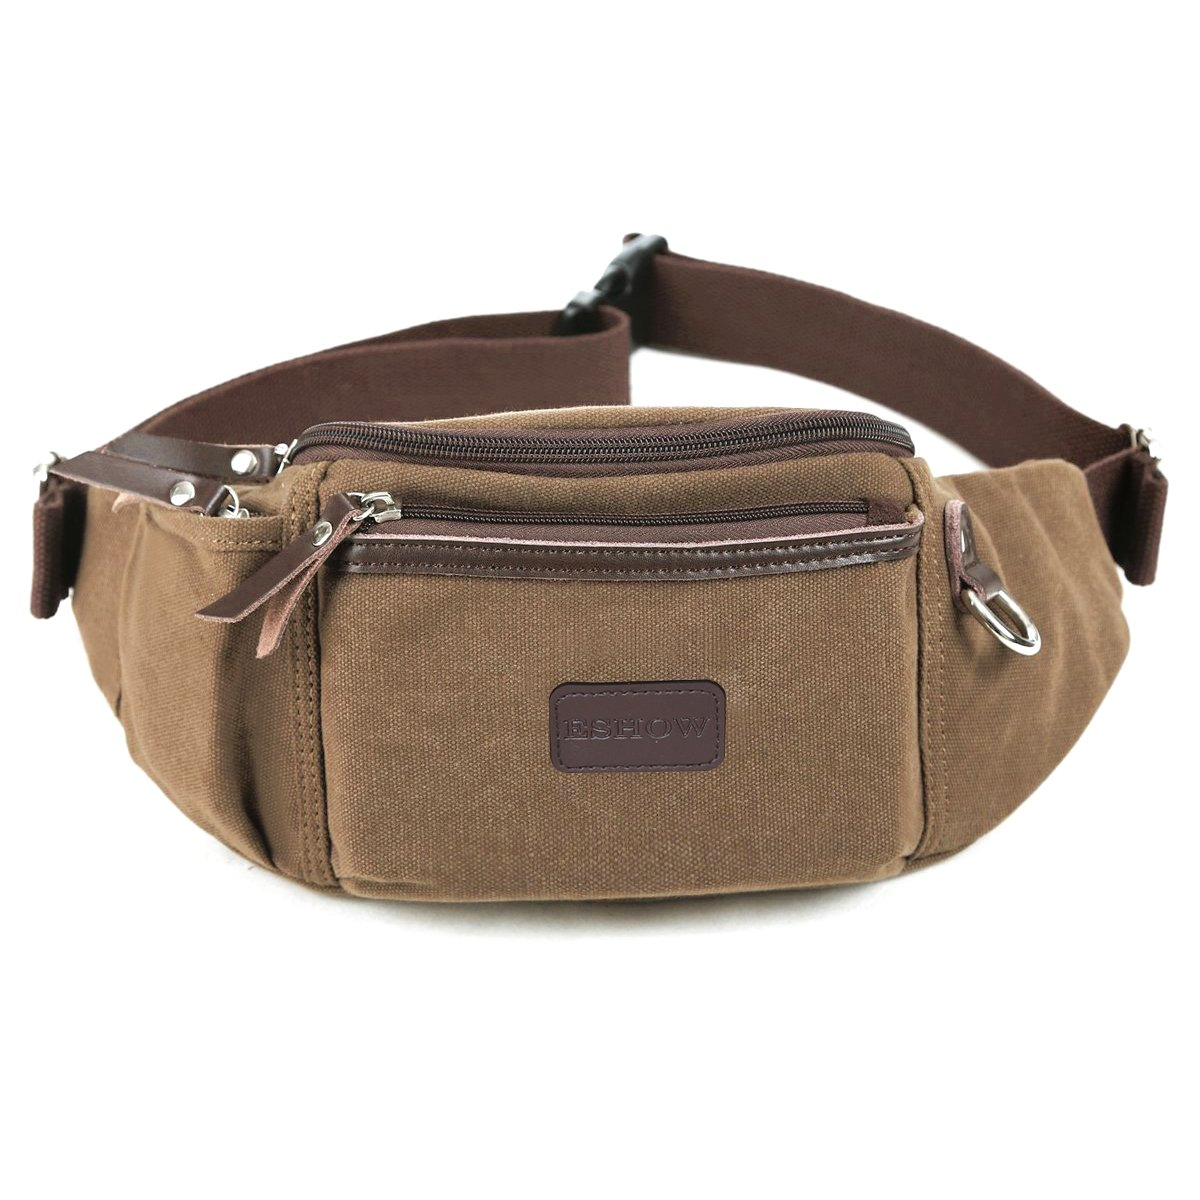 Eshow Men's Waist Pack Fanny Bag Bum Bags Canvas Sports Running Bag Eshow-BFY000018